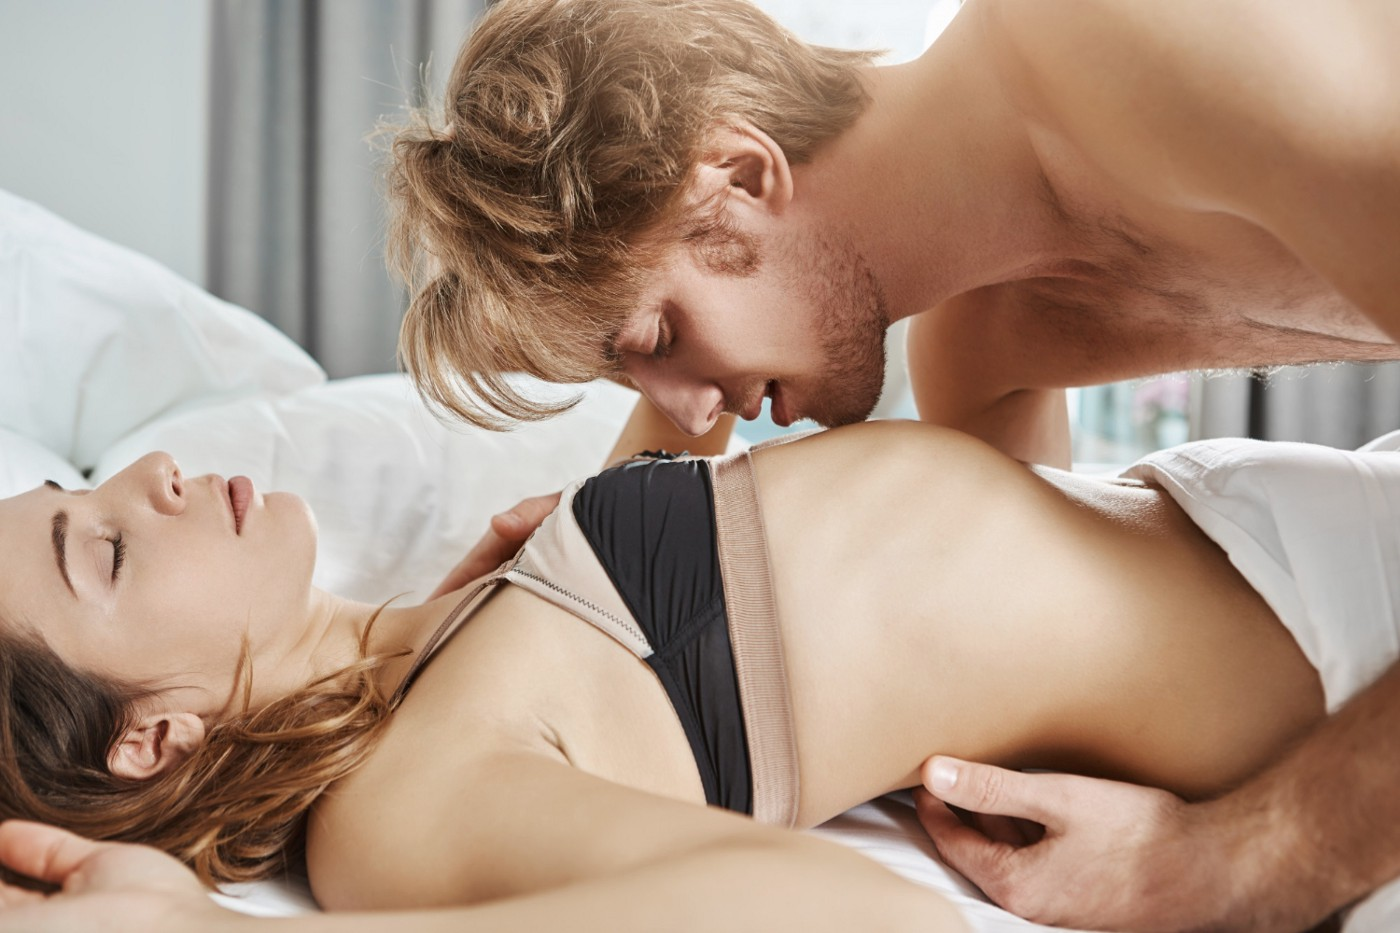 The Best Sex Advice To Give Good Sex To Your Man